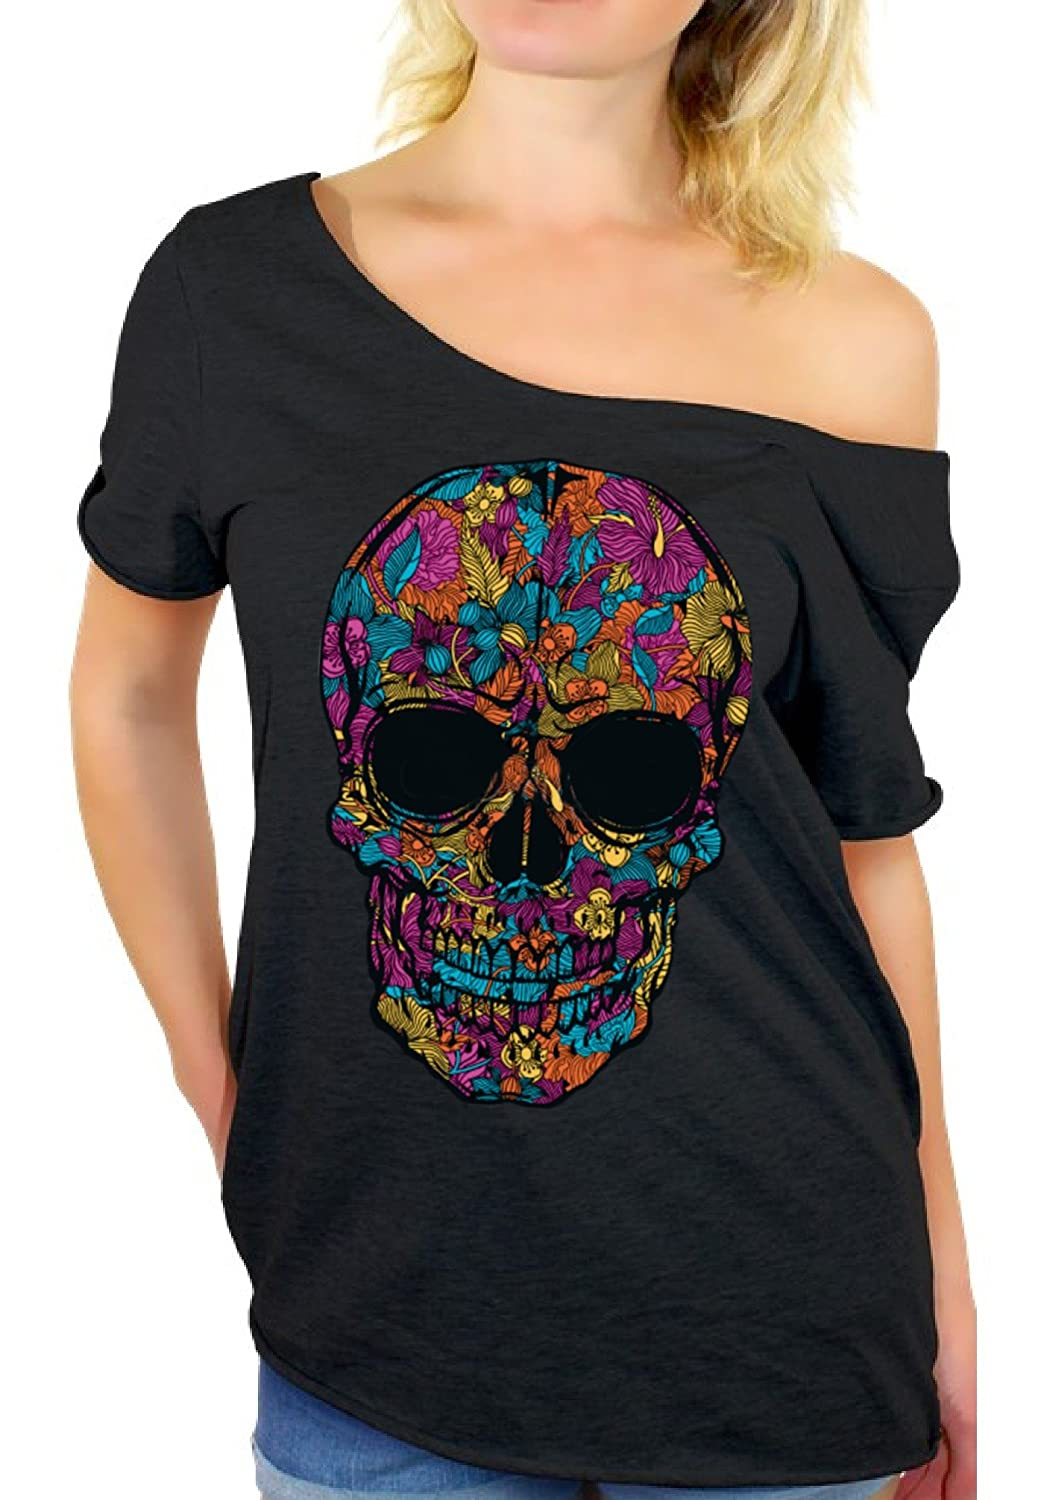 72278abbdde74 ... Black Flower Sugar Skull Day of Dead Off Shoulder Top T-Shirt.  Wholesale Price 9.95 -  22.95  ONLY PRODUCTS SOLD BY AWKWARD STYLES ARE  GUARANTEED TO BE ...